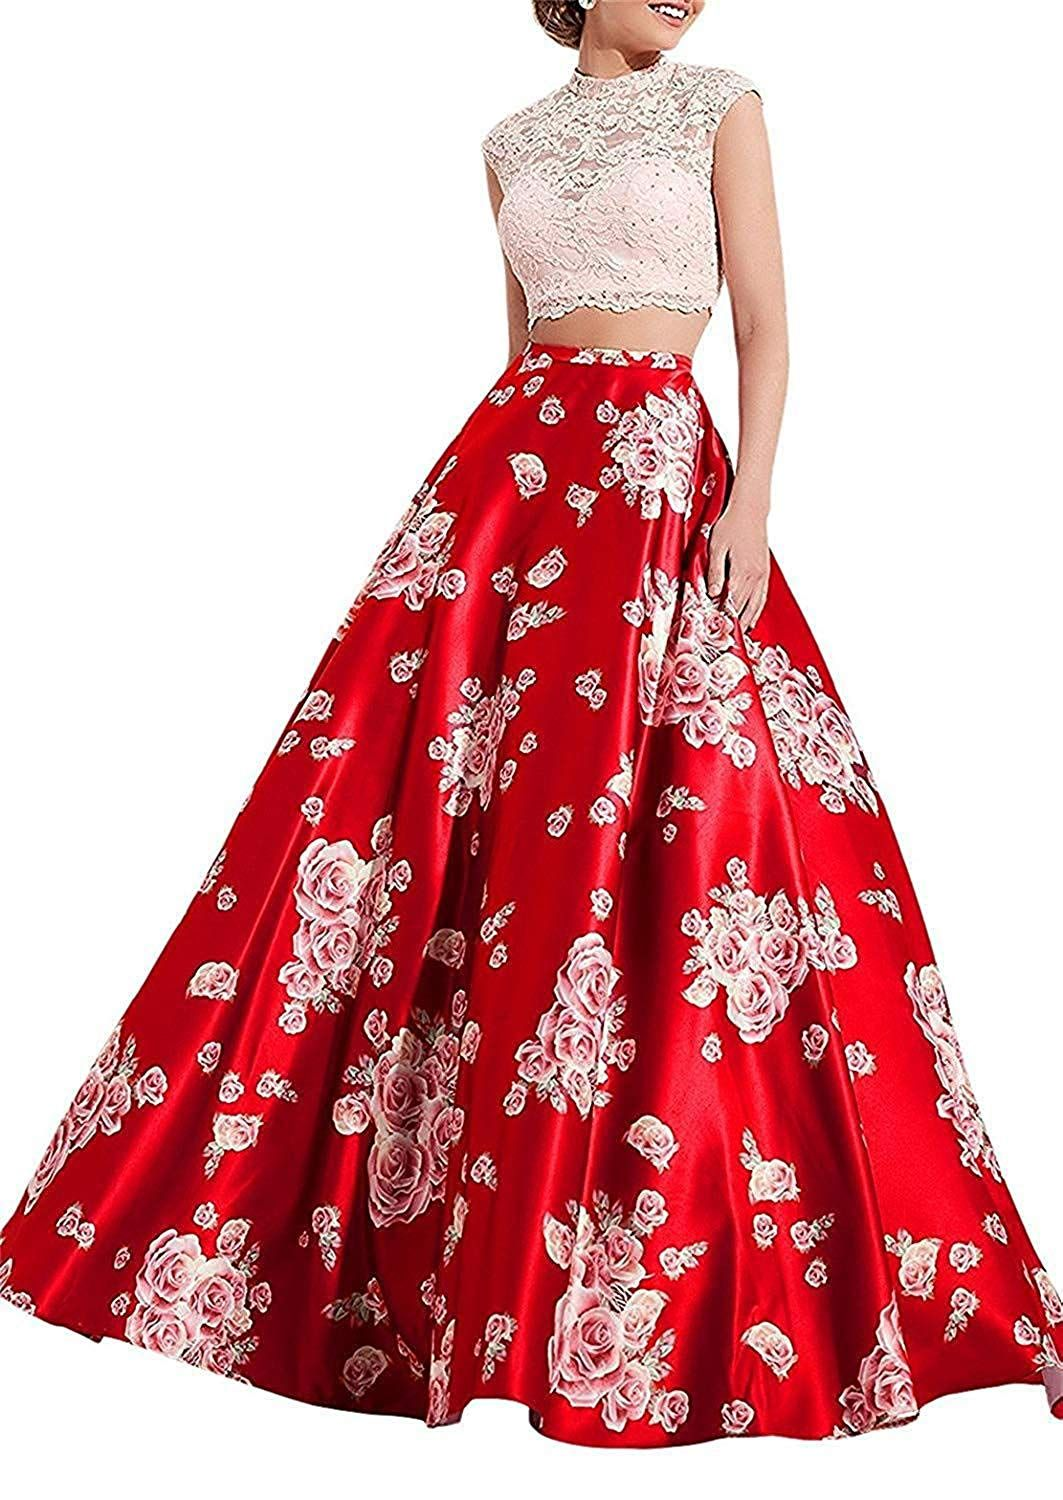 6e0dc75358d70b Aurora Bridal Womens Floral Print Beaded Long Prom Dresses 2019 Two Piece  Formal Evening Gowns We